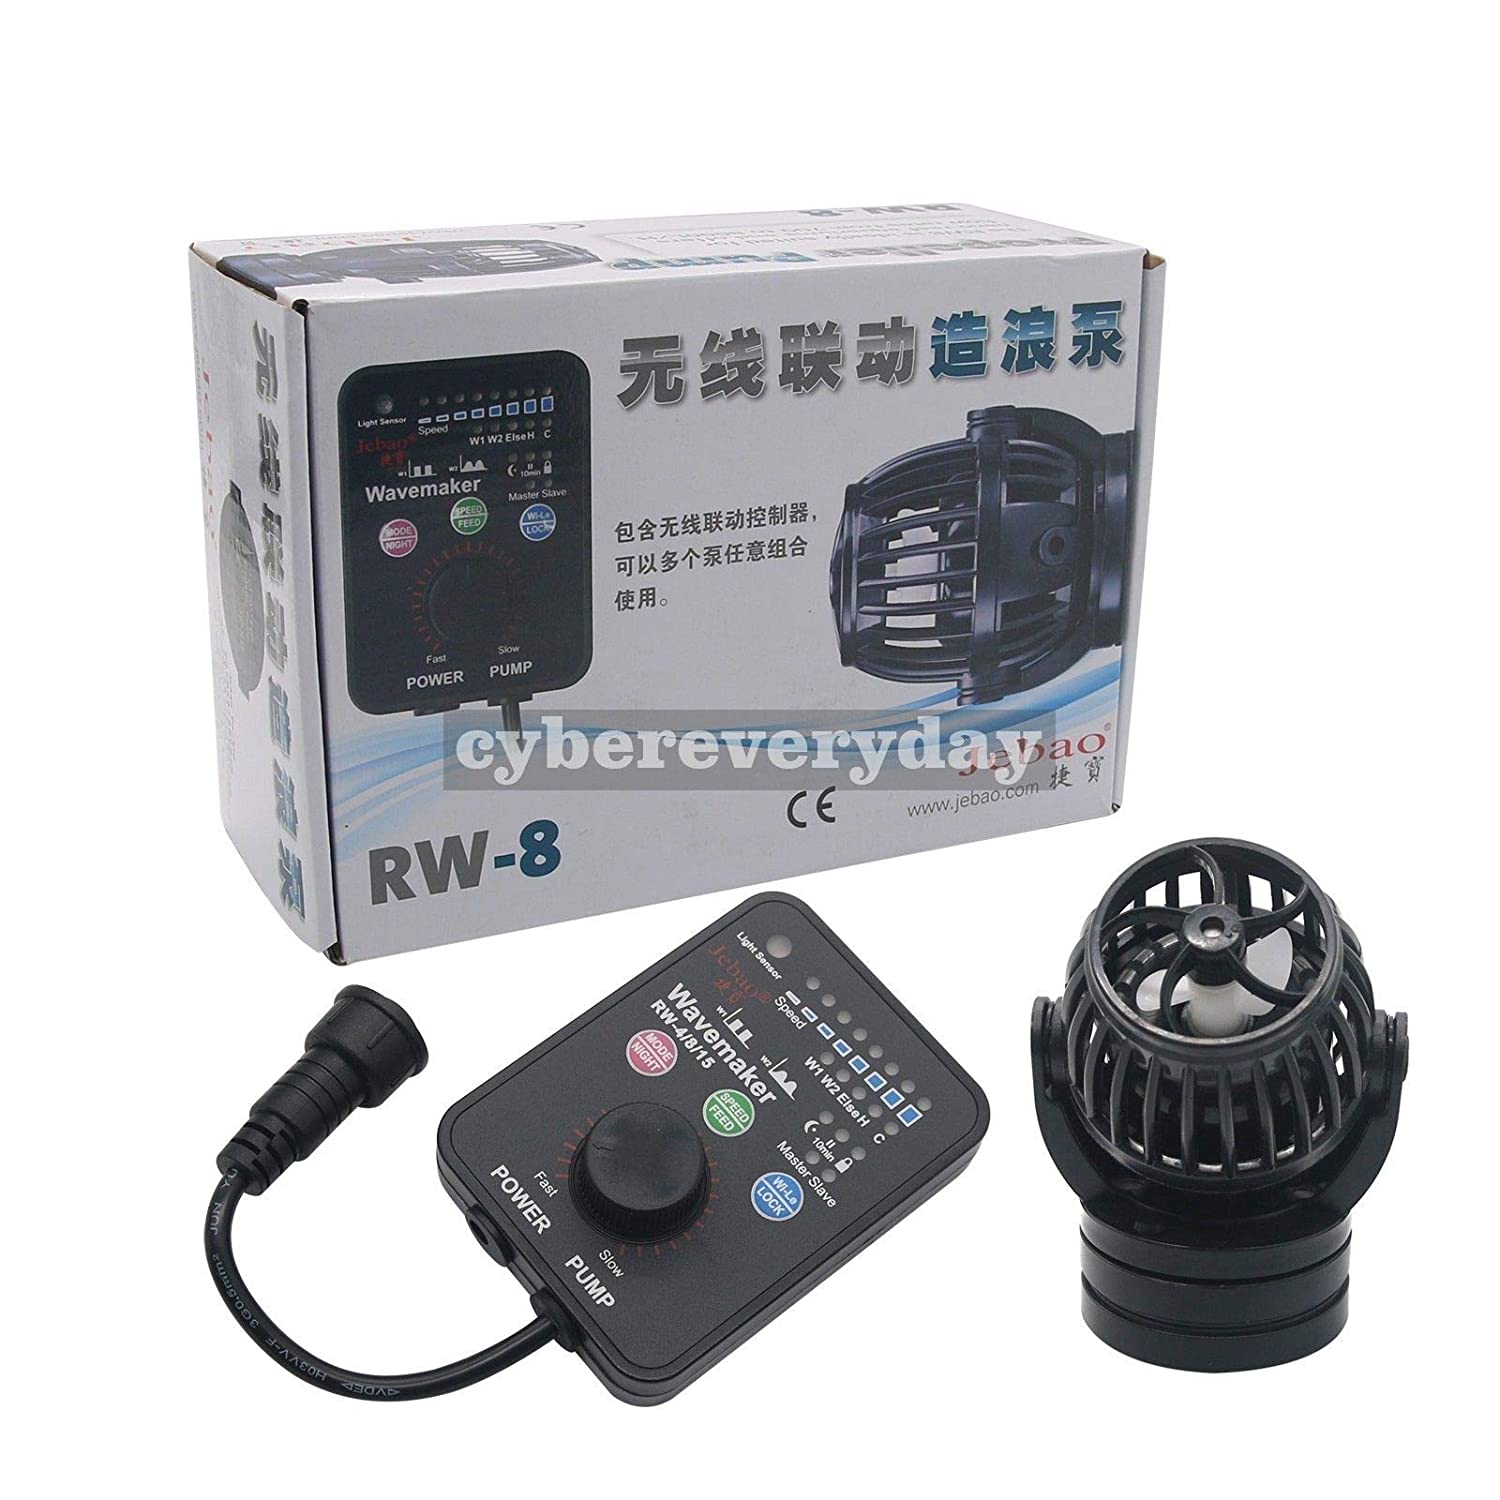 FidgetGear Jebao Jecod PP8 SW8 Wireless Wavemaker Aquarium Pump Controller RW-8 + New Mount